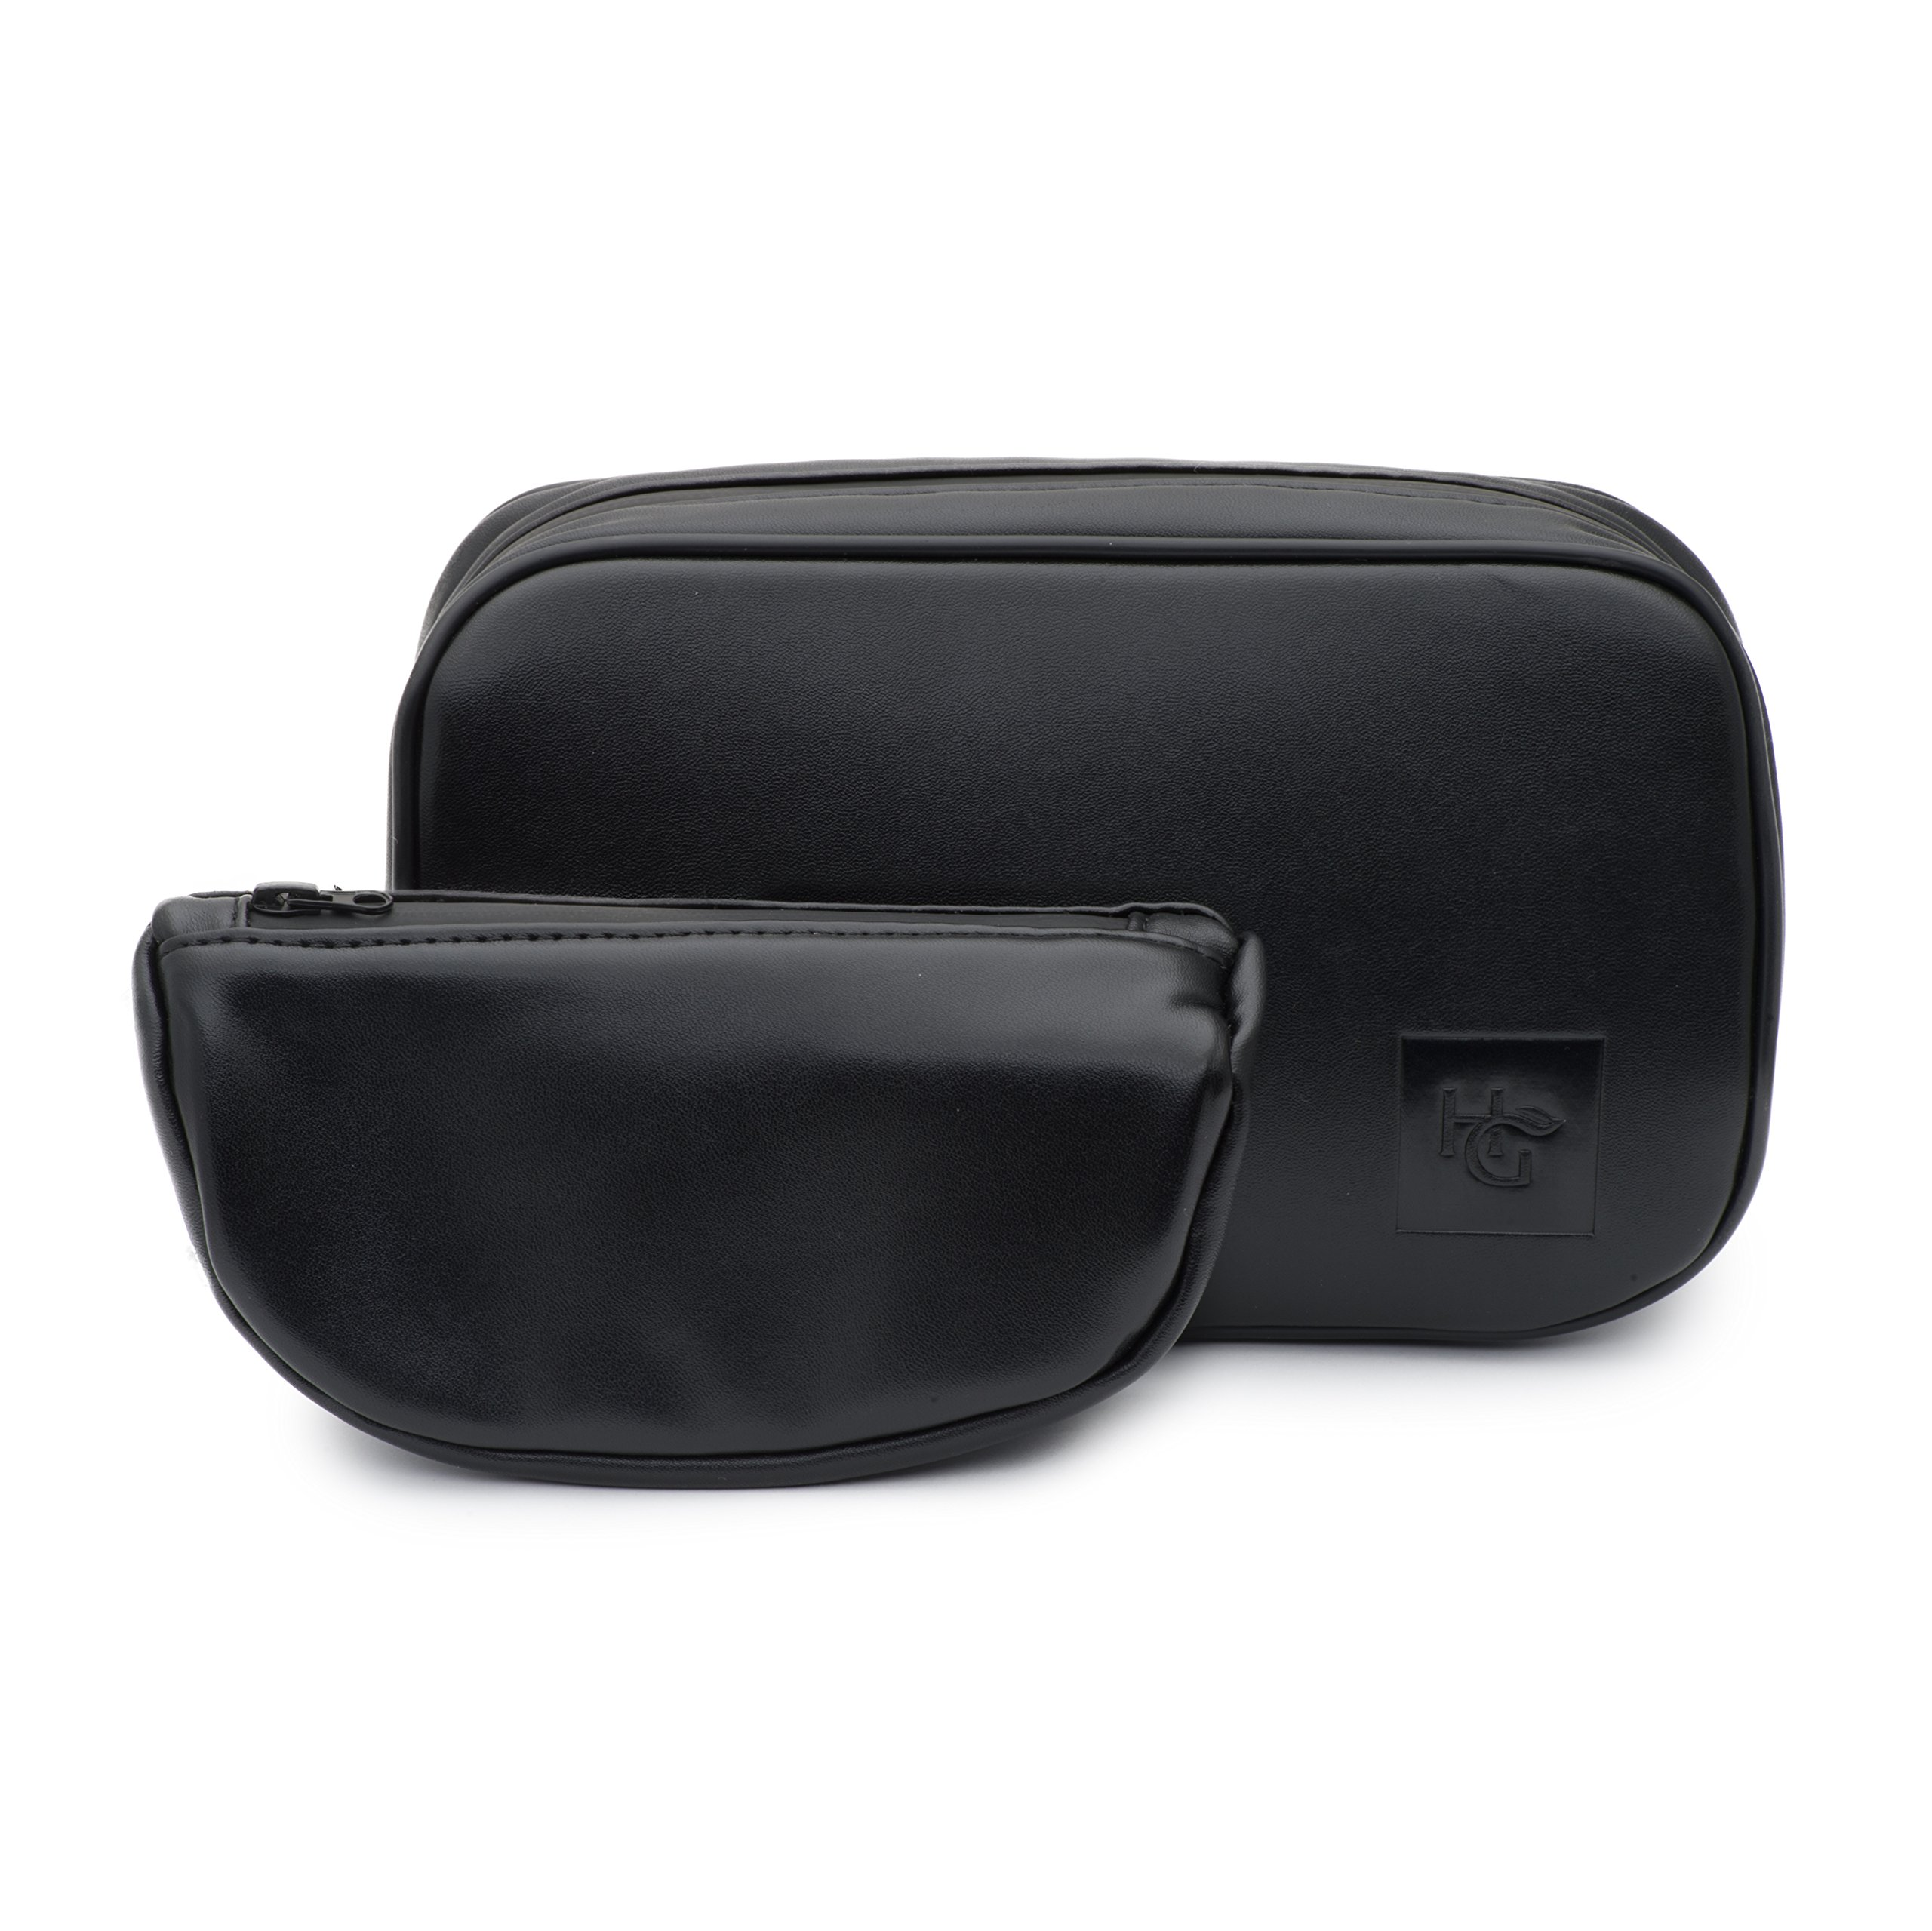 Smell Proof Leather Pipe Case by Herb Guard - Bag Comes with Smell Proof Leather Travel Pouch, Fits 2 Pipes and Accessories